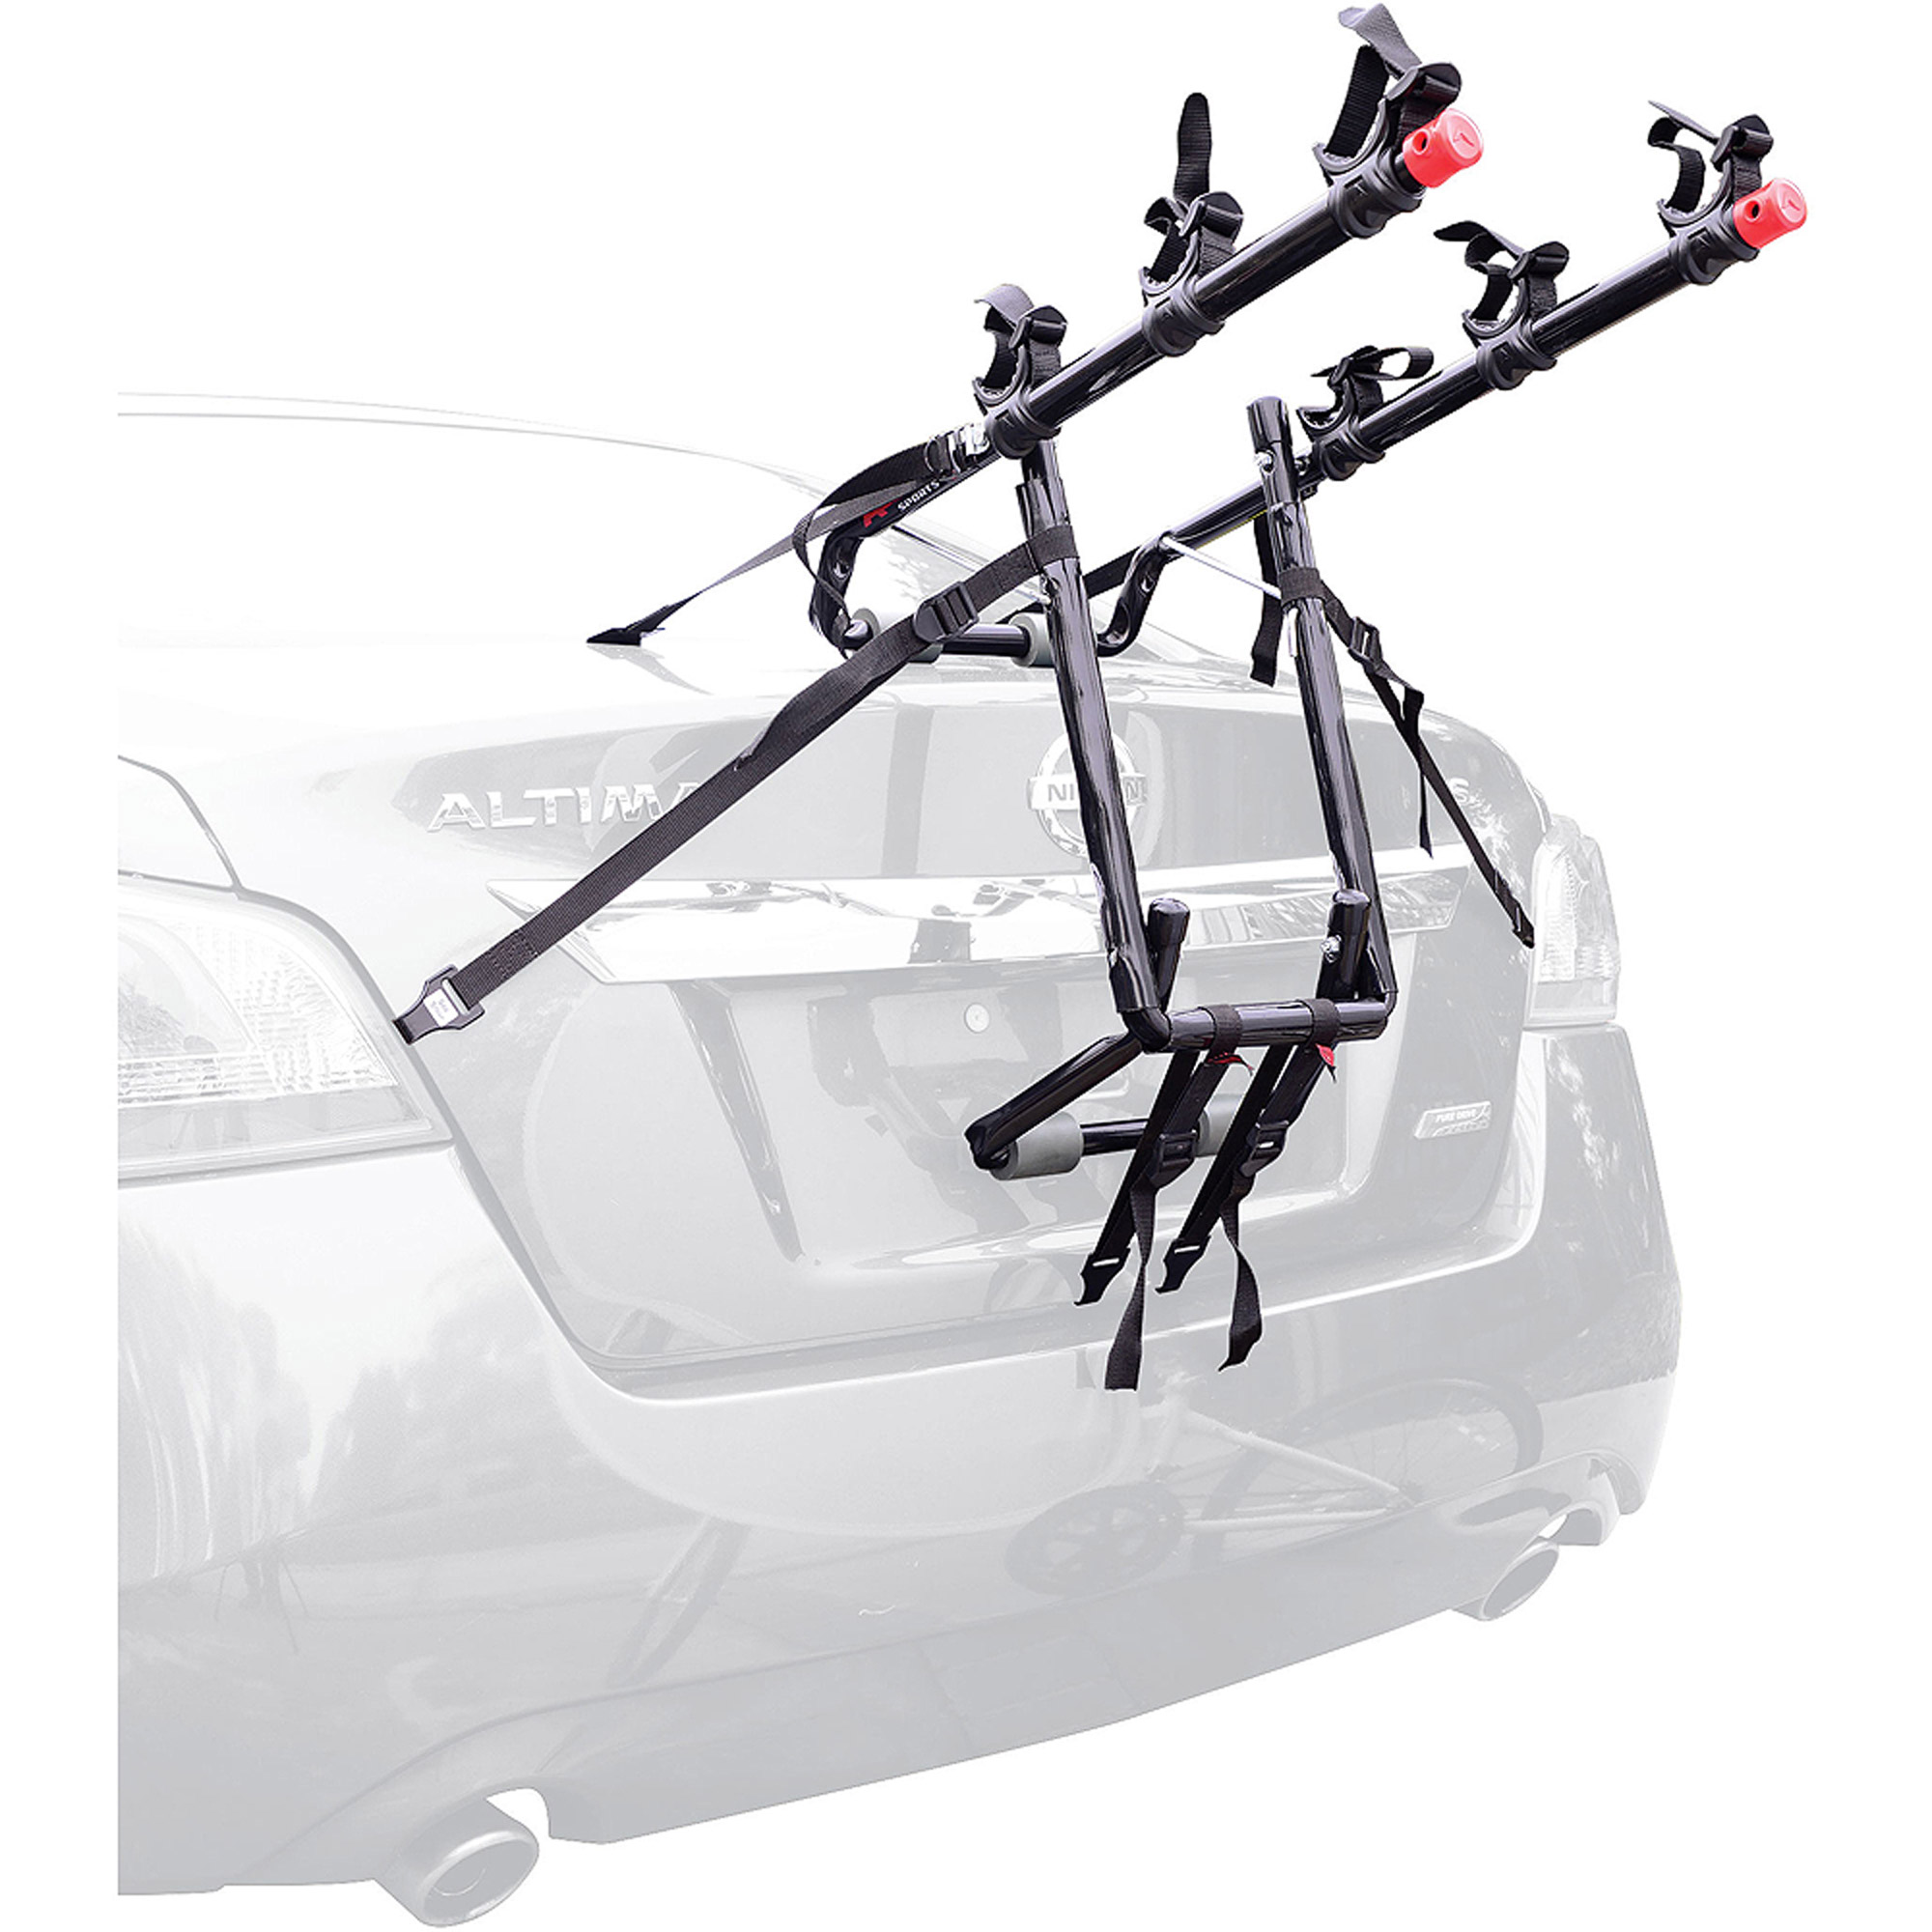 Allen Sports 103DN Deluxe 3-Bike Trunk Mounted Bike Rack